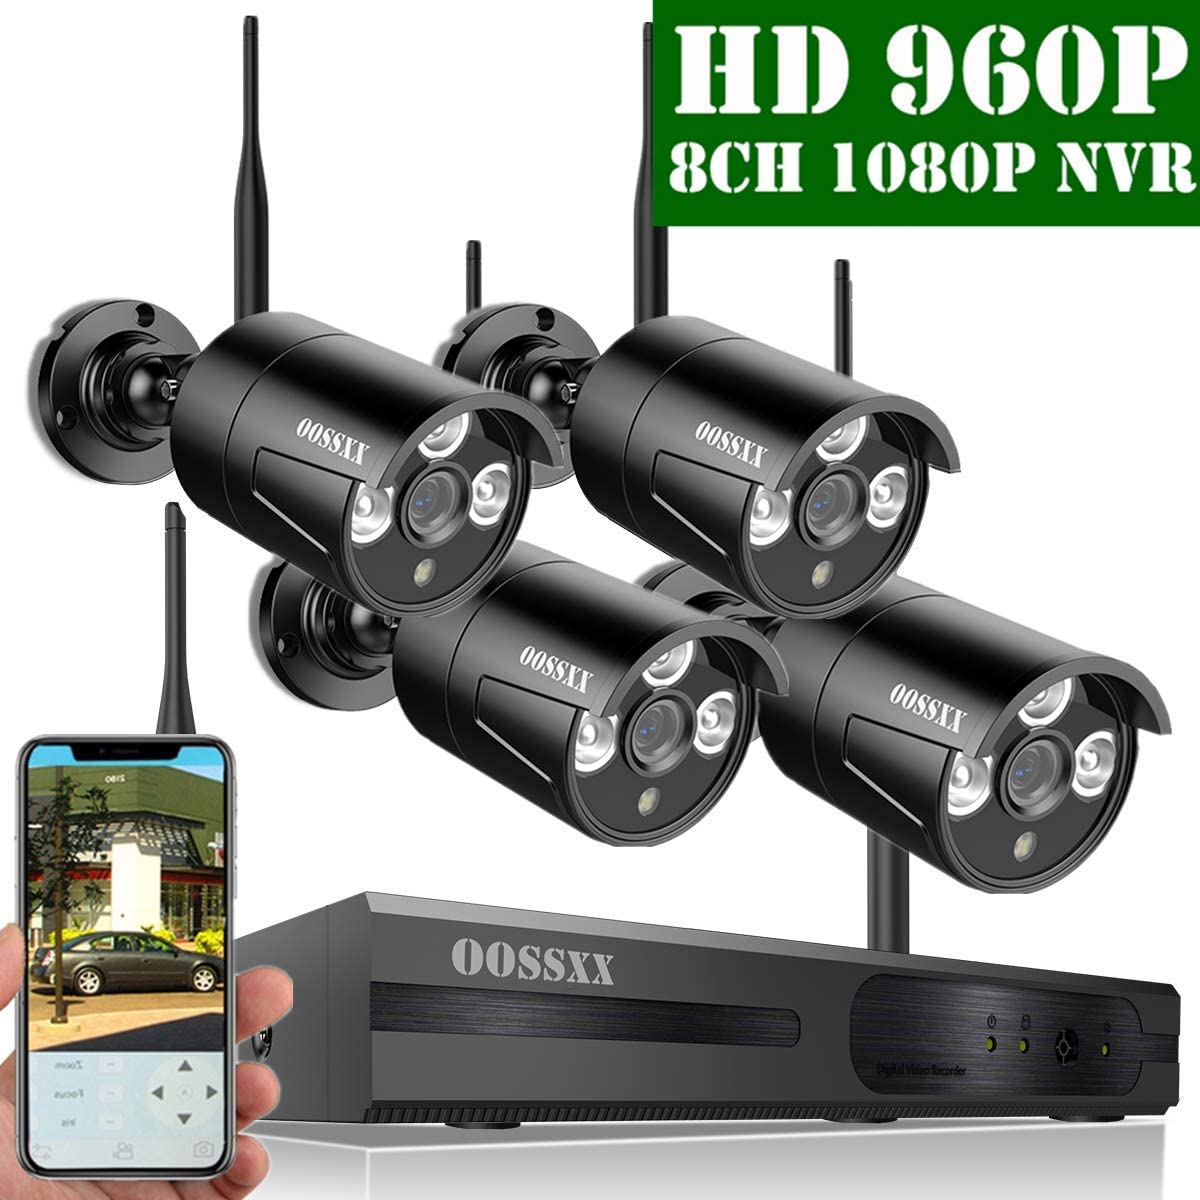 OOSSXX 8-Channel HD 1080P Wireless Network IP Security Camera System IP Wireless WiFi NVR Kits ,4Pcs 960P 1.3 Megapixel Wireless Indoor Outdoor IR Bullet IP Cameras,P2P,App,No Hard Drive